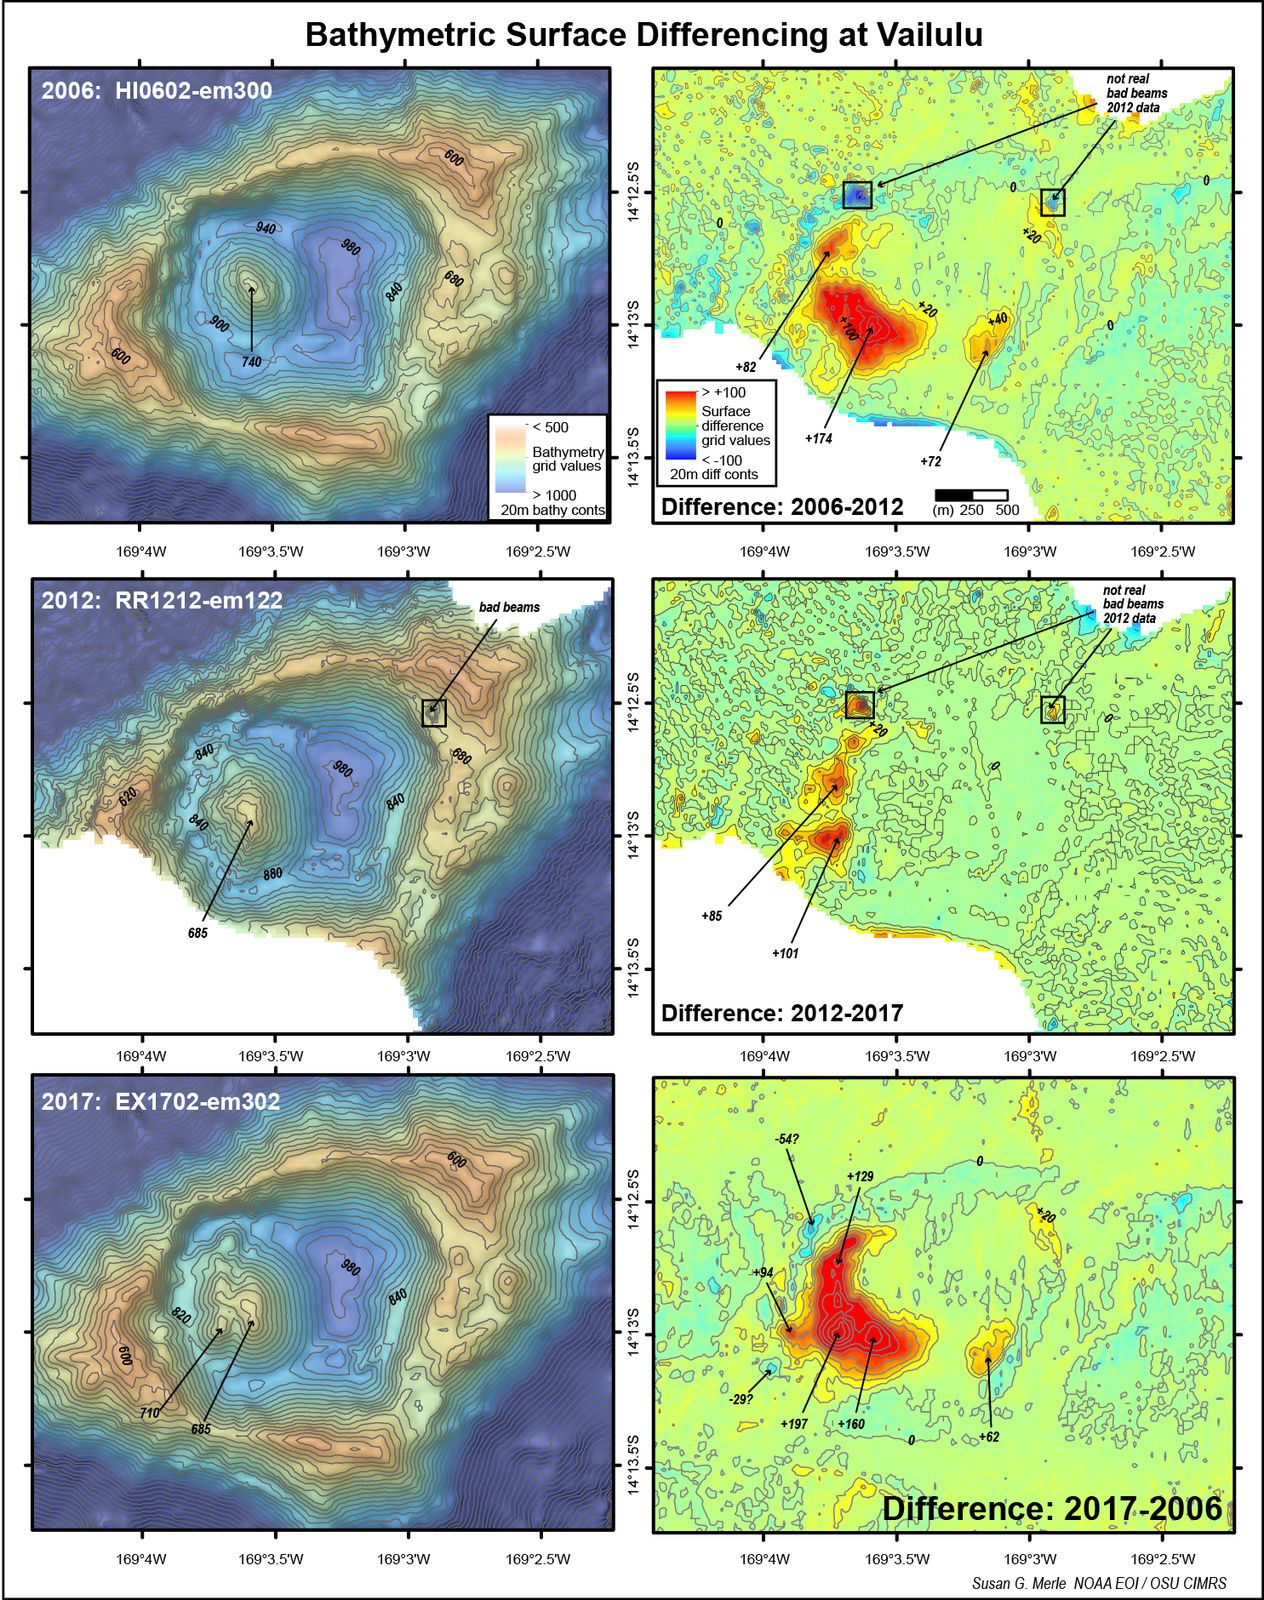 Maps comparing three bathymetric surveys collected at Vailulu'u in 2006, 2012, and 2017 (left) and depth comparisons between them (right). Red areas show positive depth changes due to eruptions at Nafanua cone between the surveys. Image courtesy of Susan Merle, Oregon State University and NOAA/PMEL.